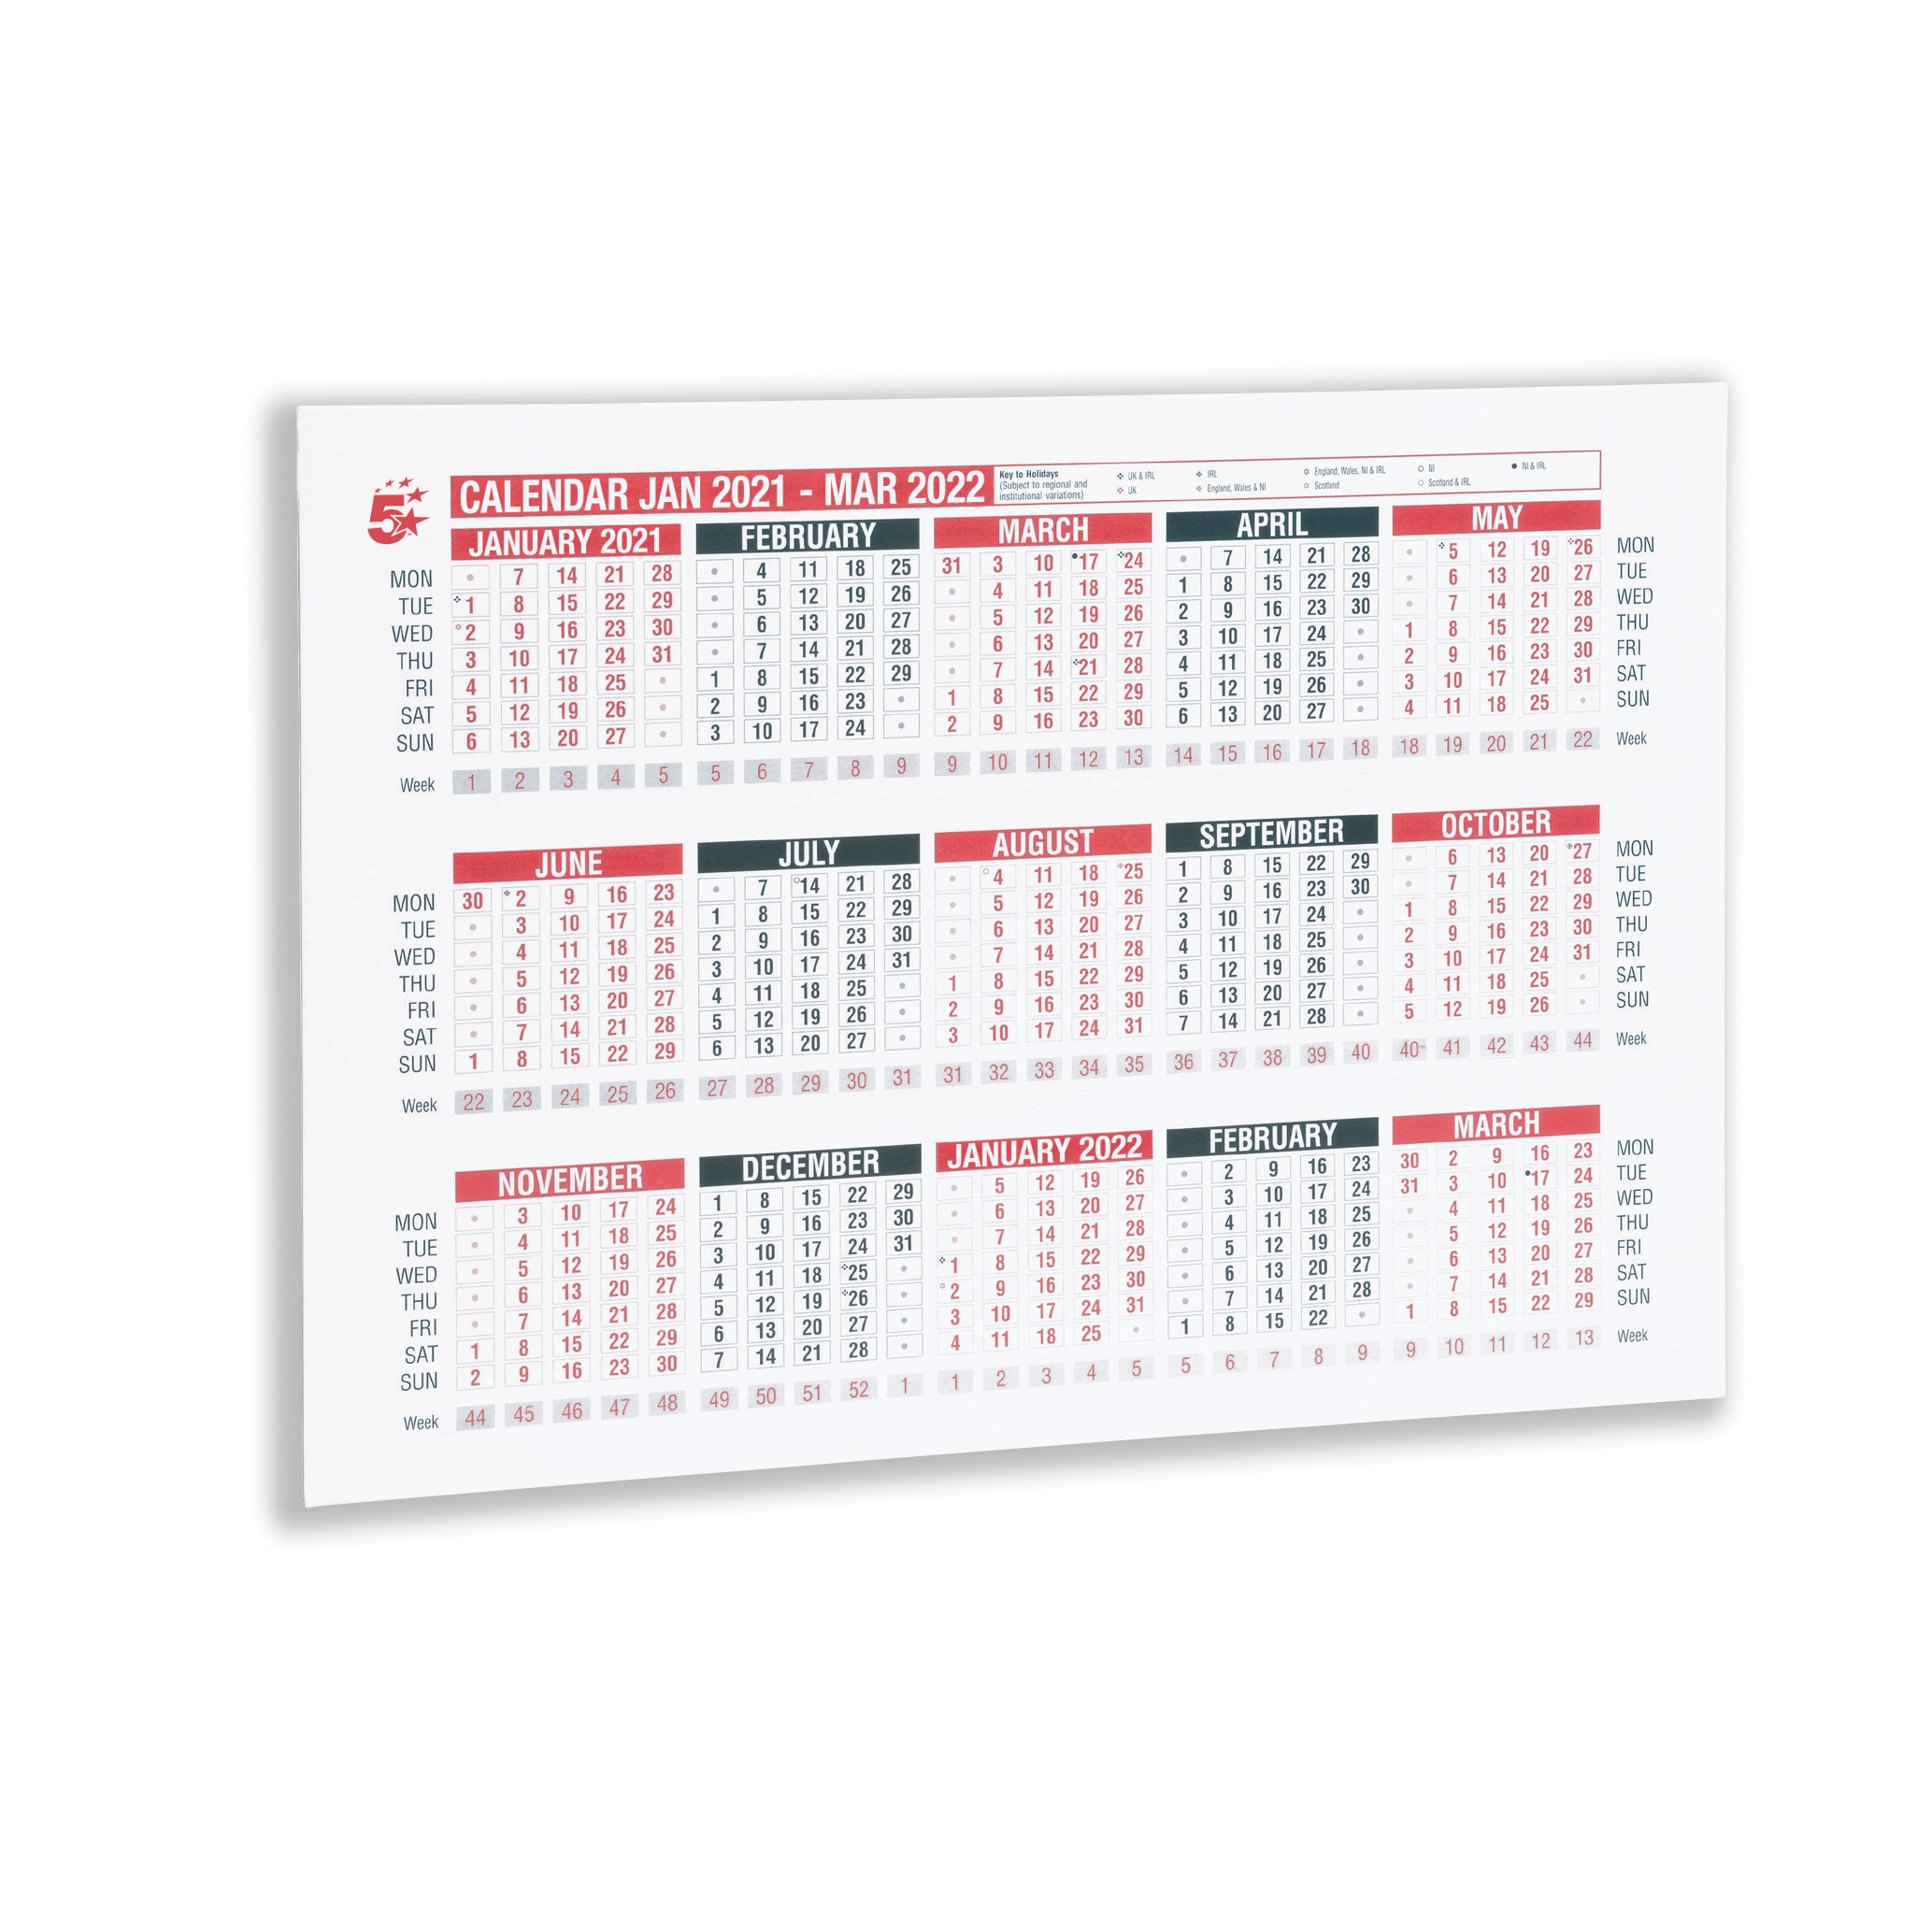 Calendars 5 Star Office 2021 Wall or Desk Calendar Jan 2021-March 2022 A4 297x210mm White